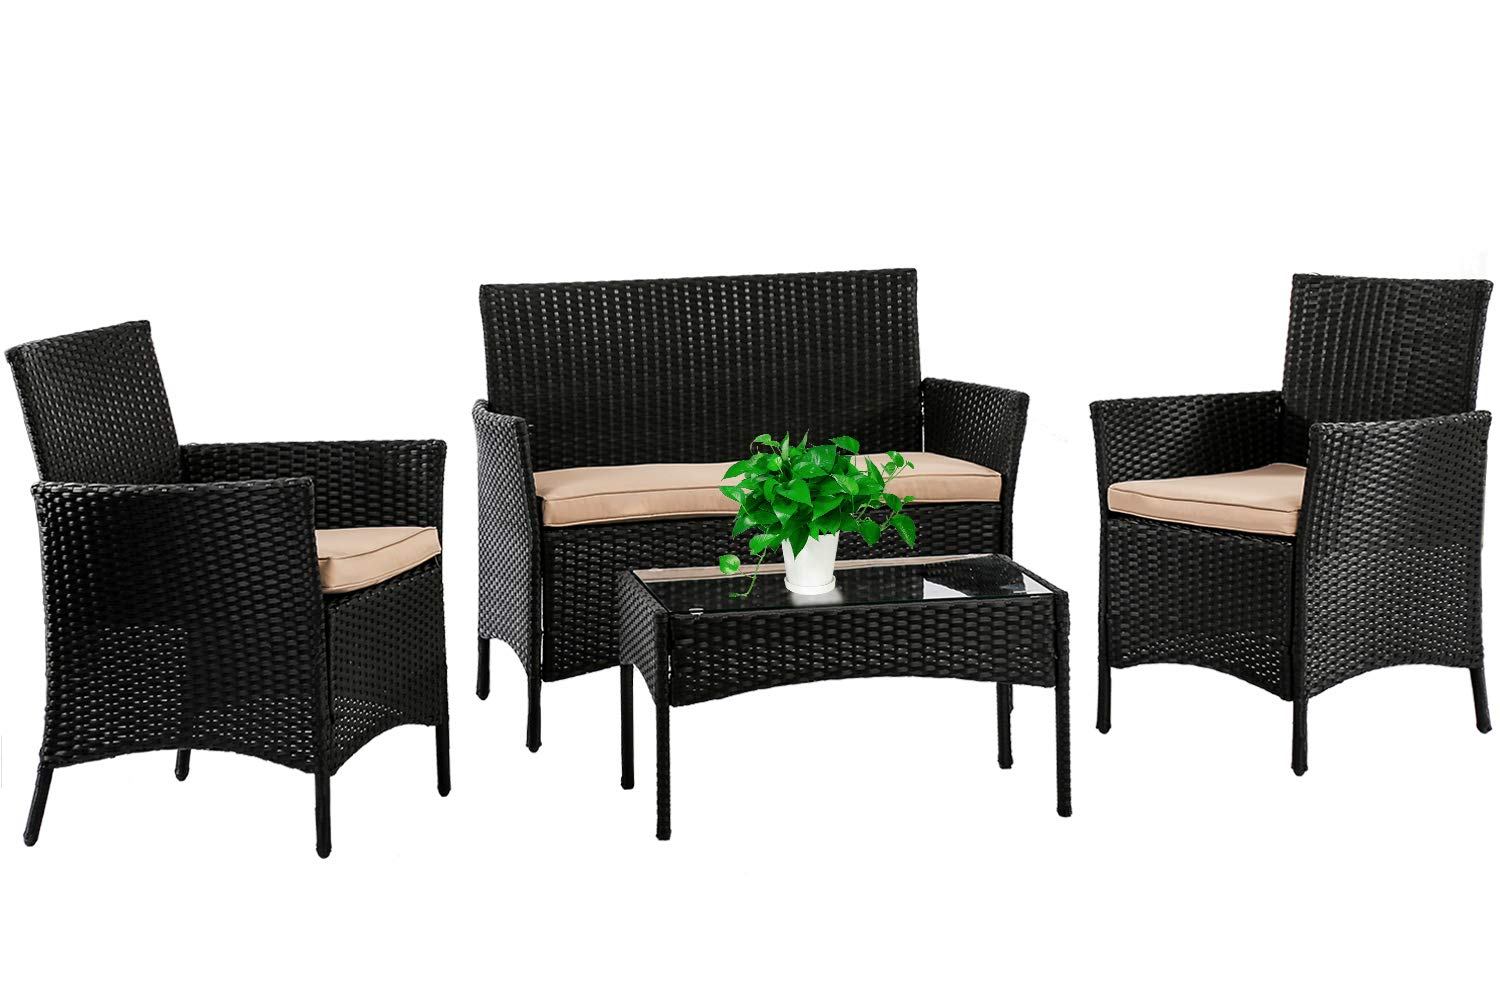 Patio Furniture Set 4 Piece Outdoor Wicker Sofas Rattan Chair Wicker Conversation Set Coffee Table Bistro Sets For Pool Backyard Lawn,Black